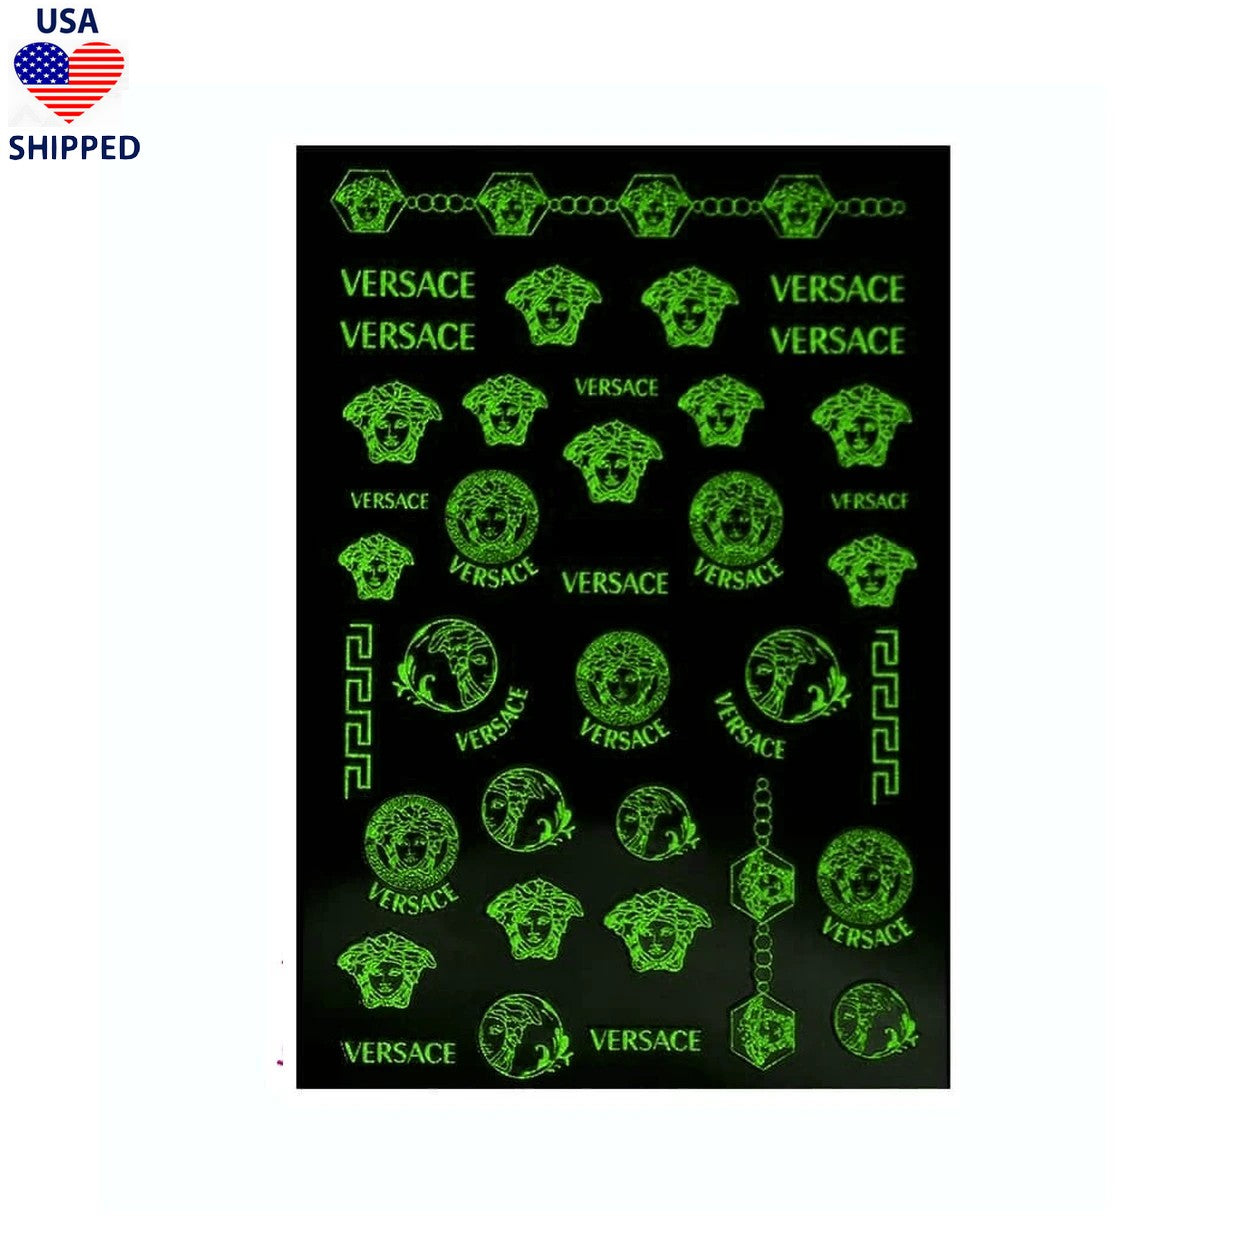 (USA) Medusa / Glow in The Dark Nail Stickers